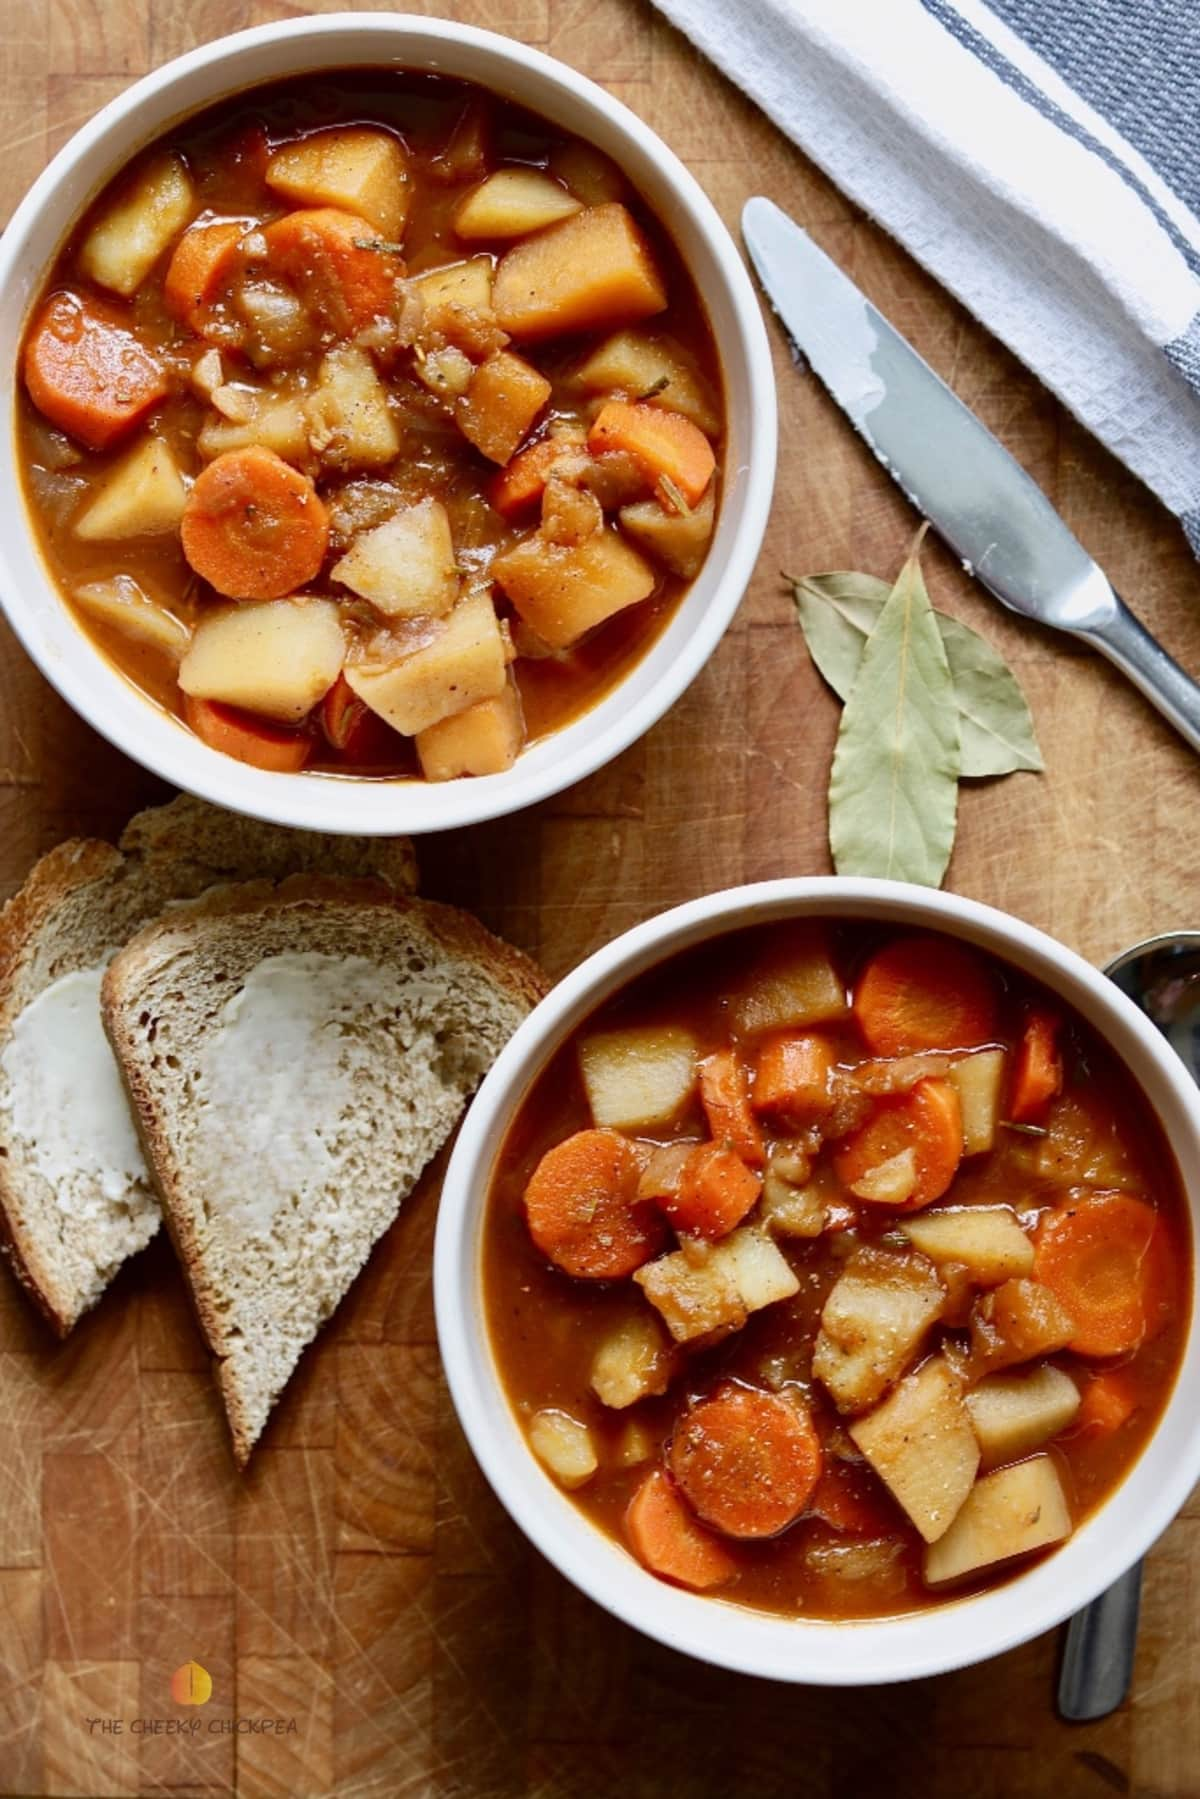 two bowls of hearty vegan stew